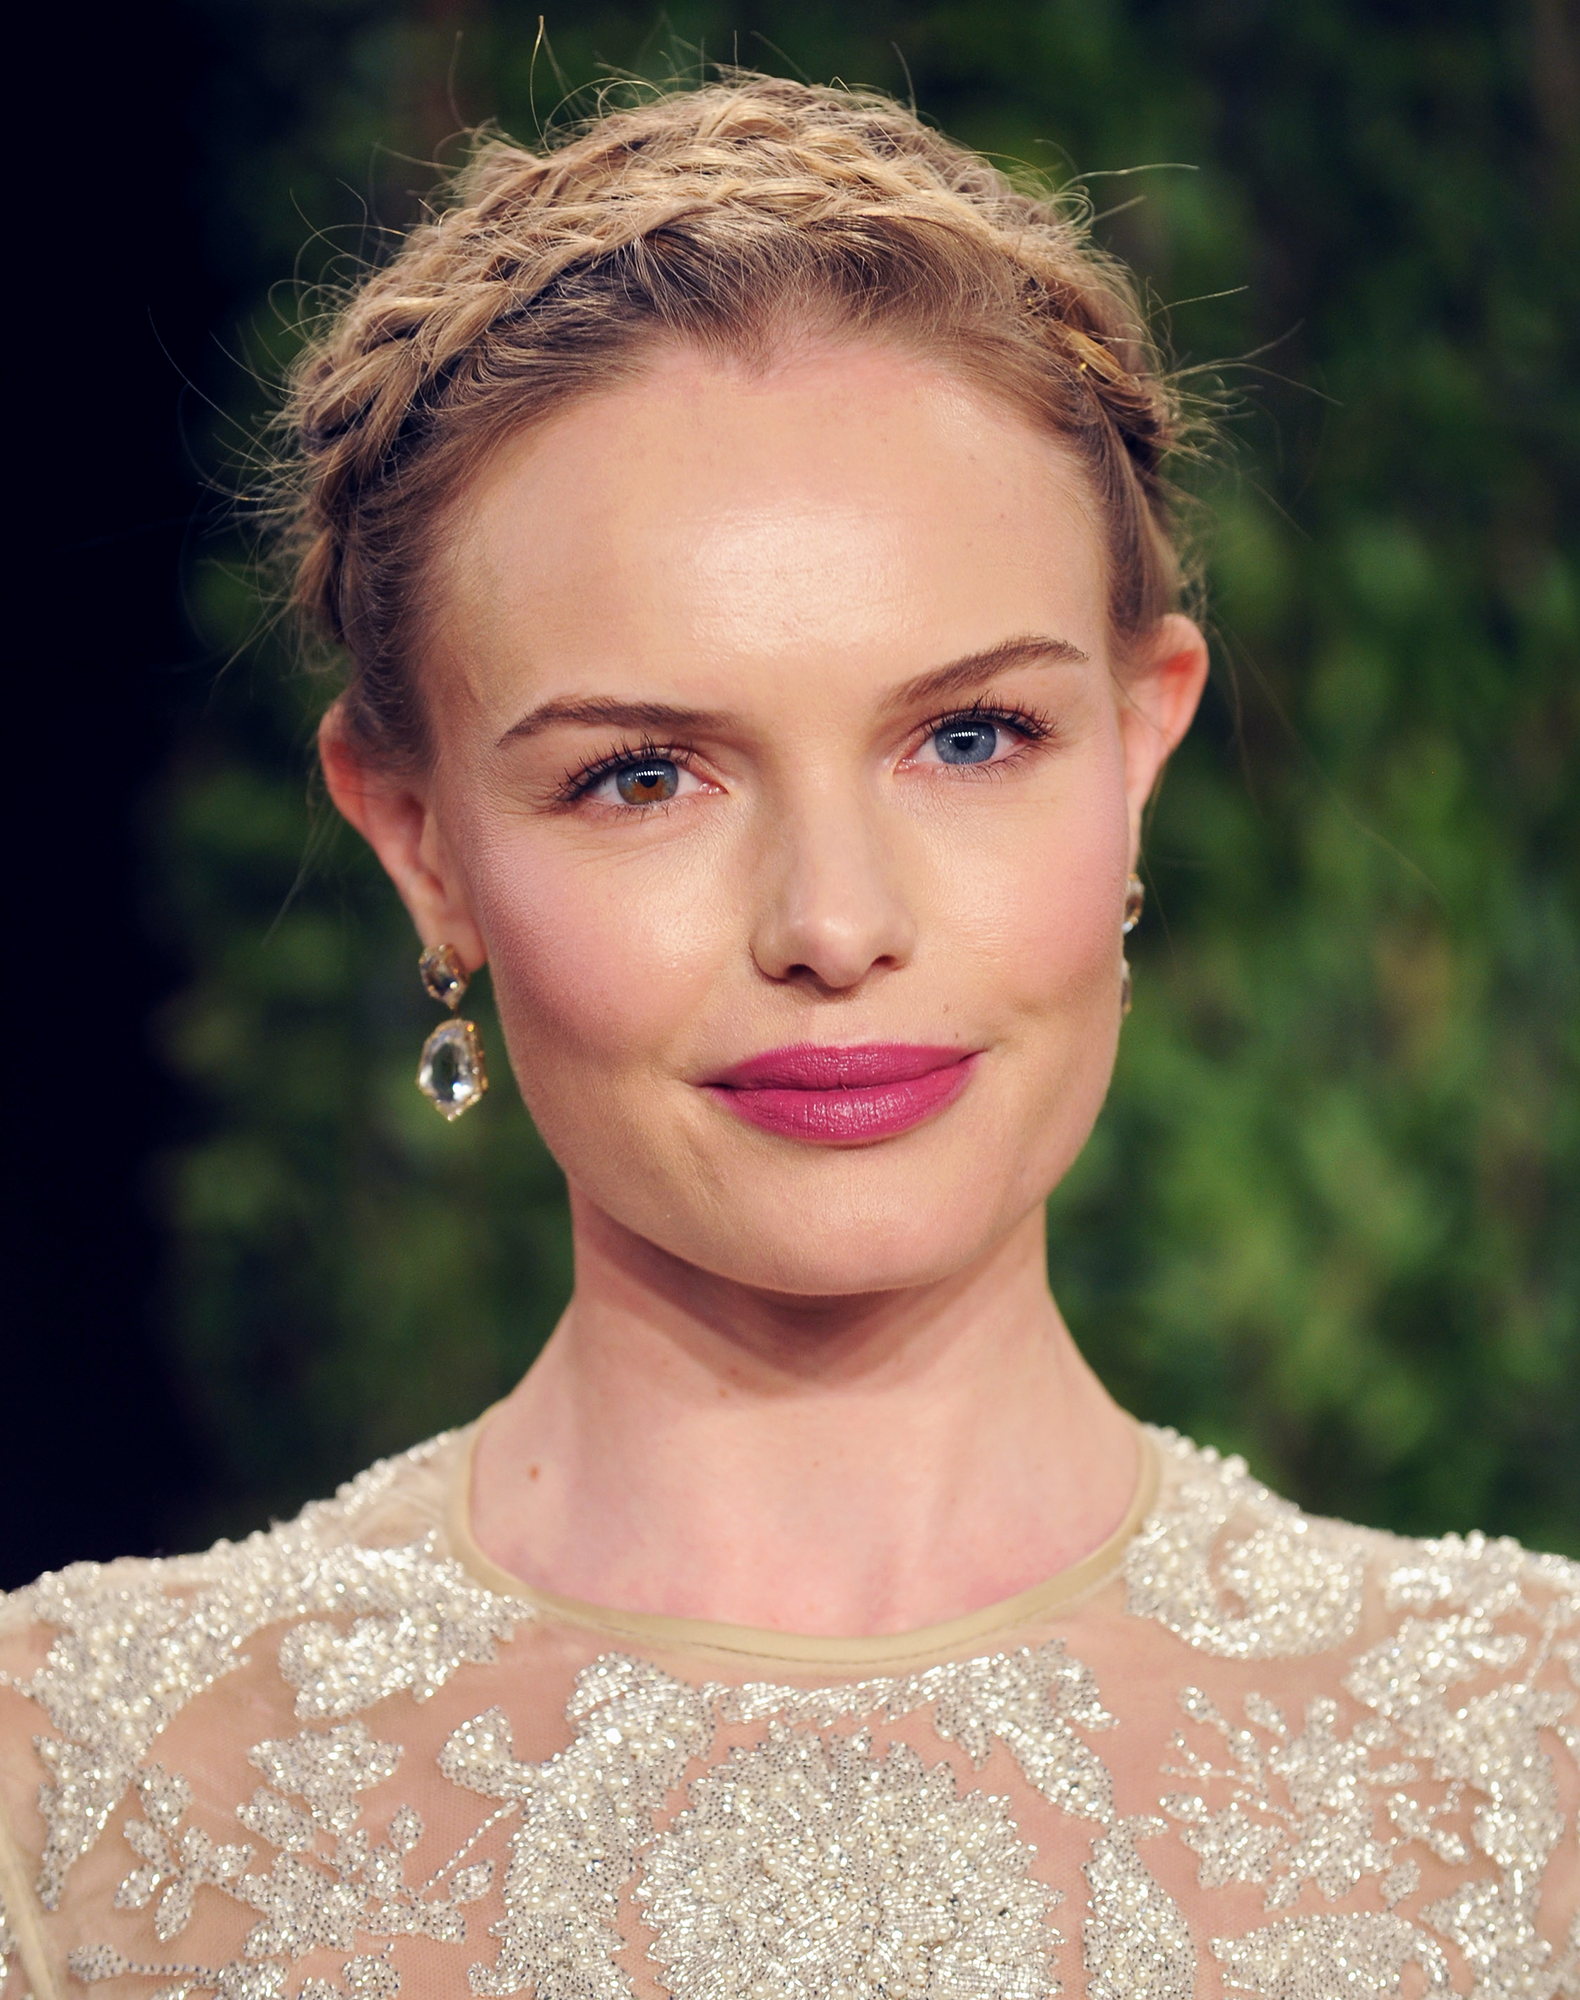 See Birthday Girl Kate Bosworth's Best Beauty Moments - We're not sure what we love most about the blonde beauty's look at the 2013 Vanity Fair Oscar Party: her halo of wispy braids or her beautiful berry pout?